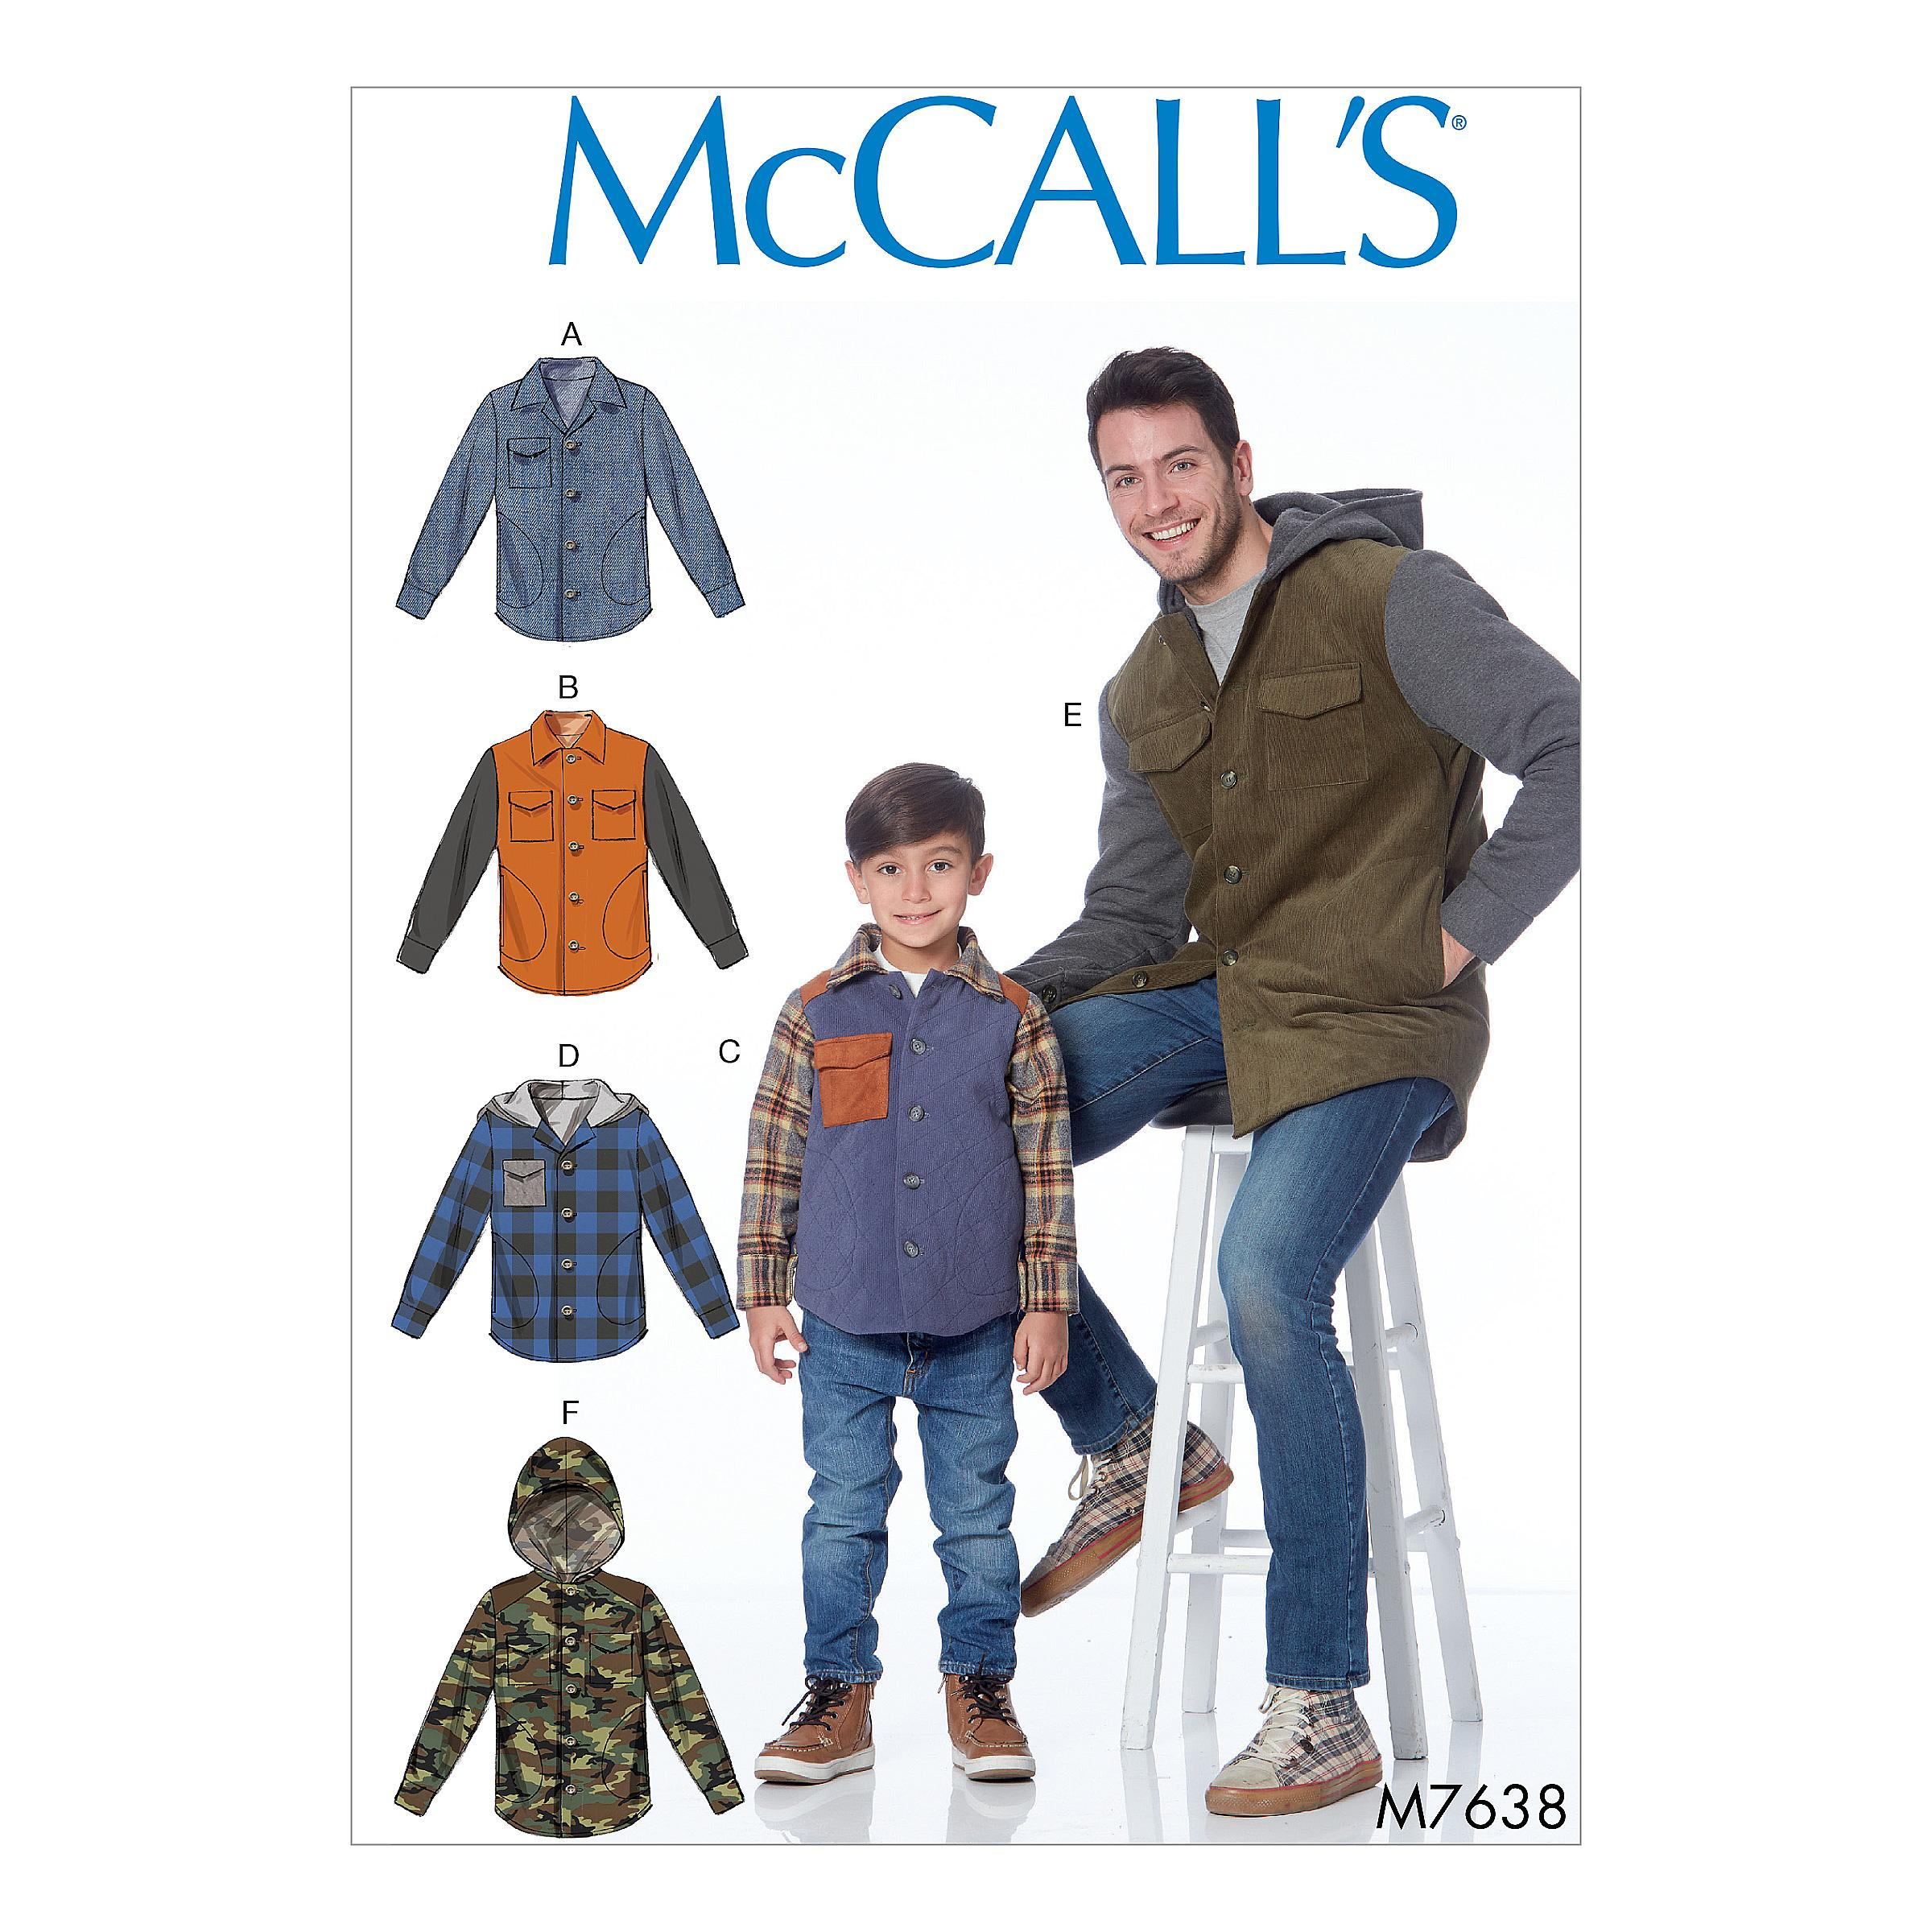 McCalls M7638 Kids Girls & Boys, Kids Children, Men